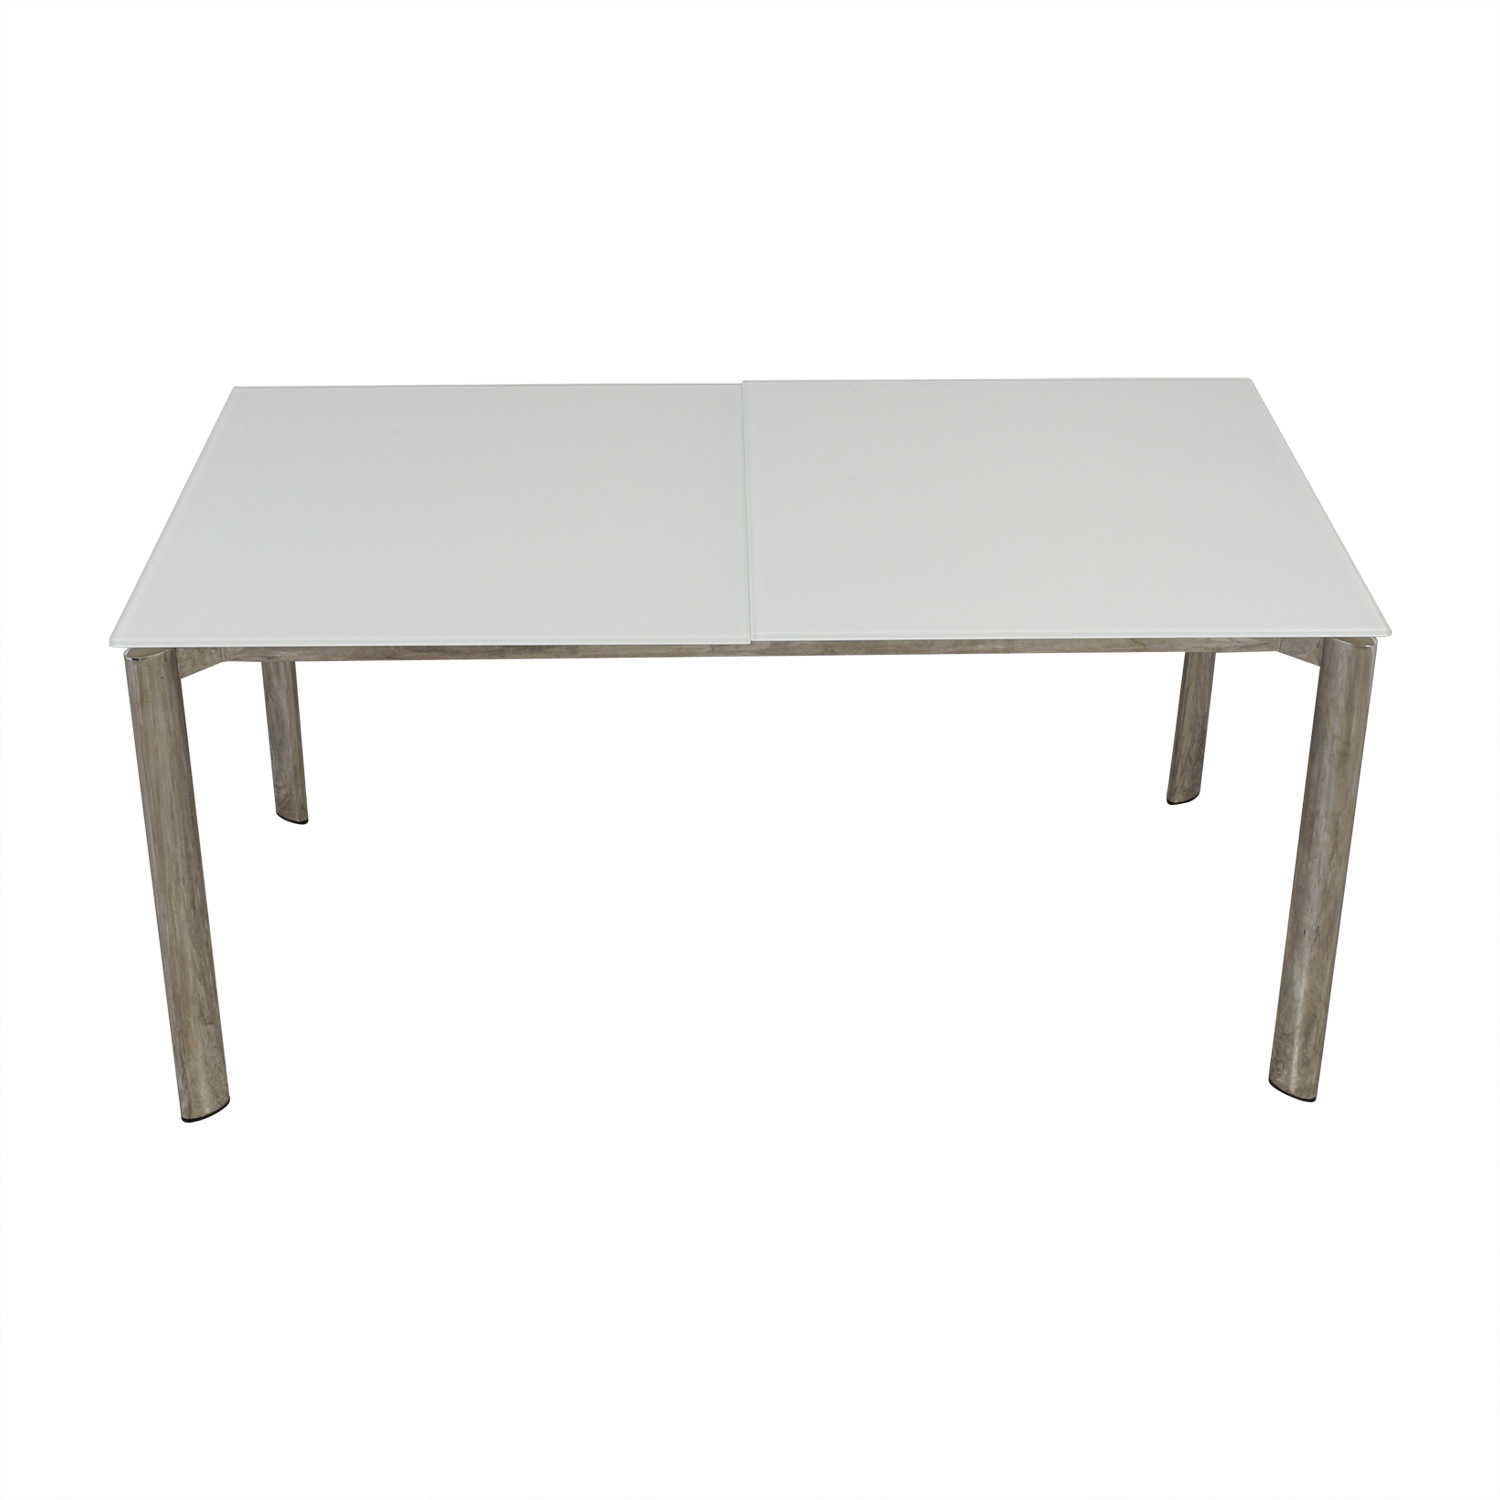 buy Modani Expandable White Glass and Chrome Dining Table Modani